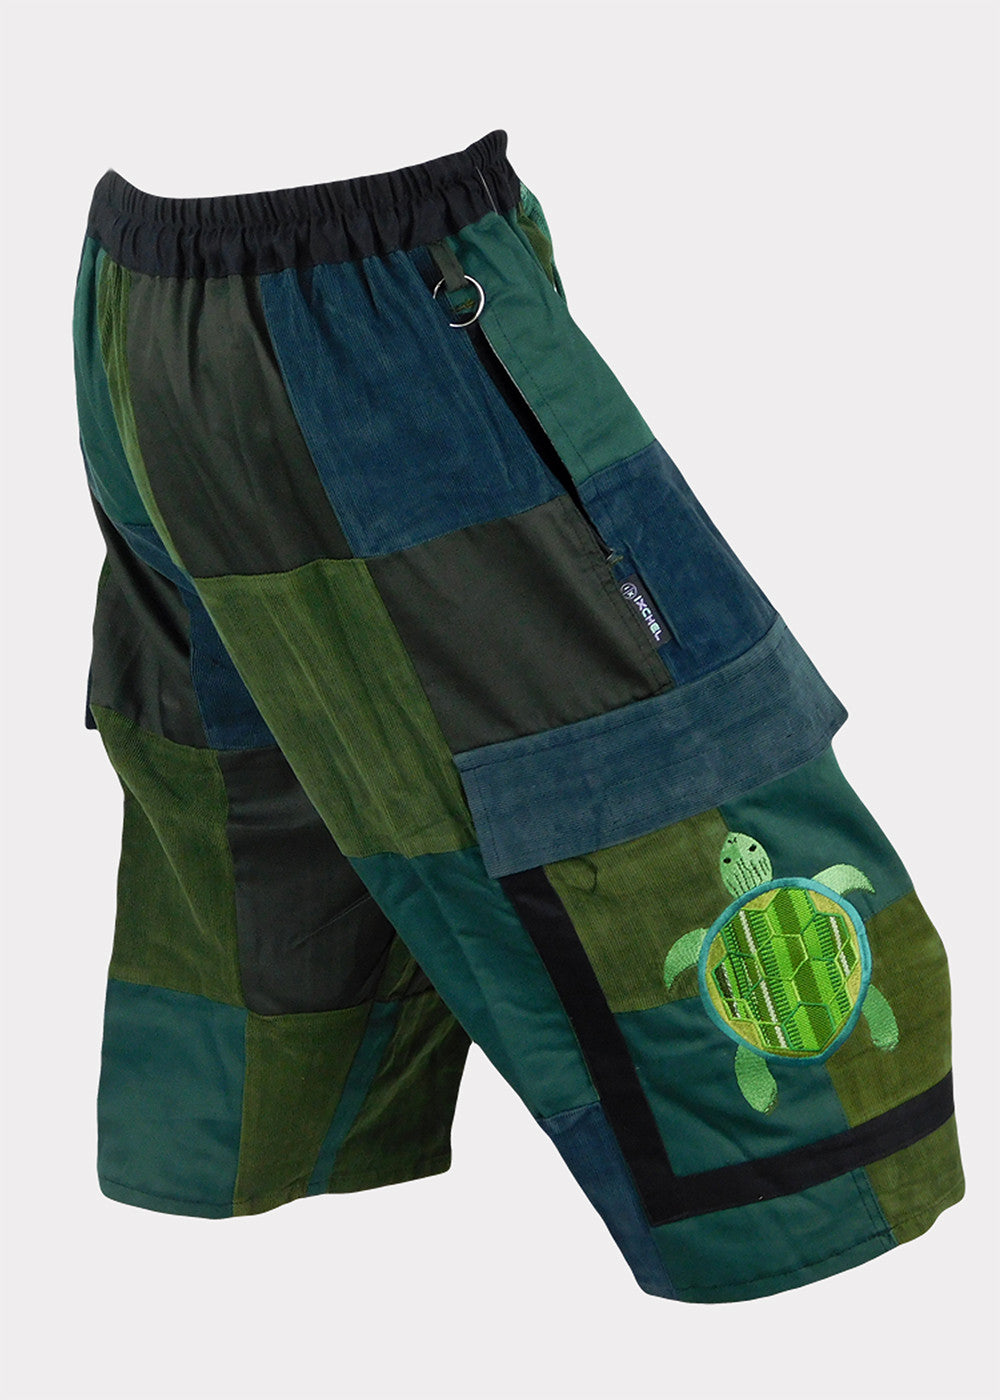 Terrapin Patchwork Shorts